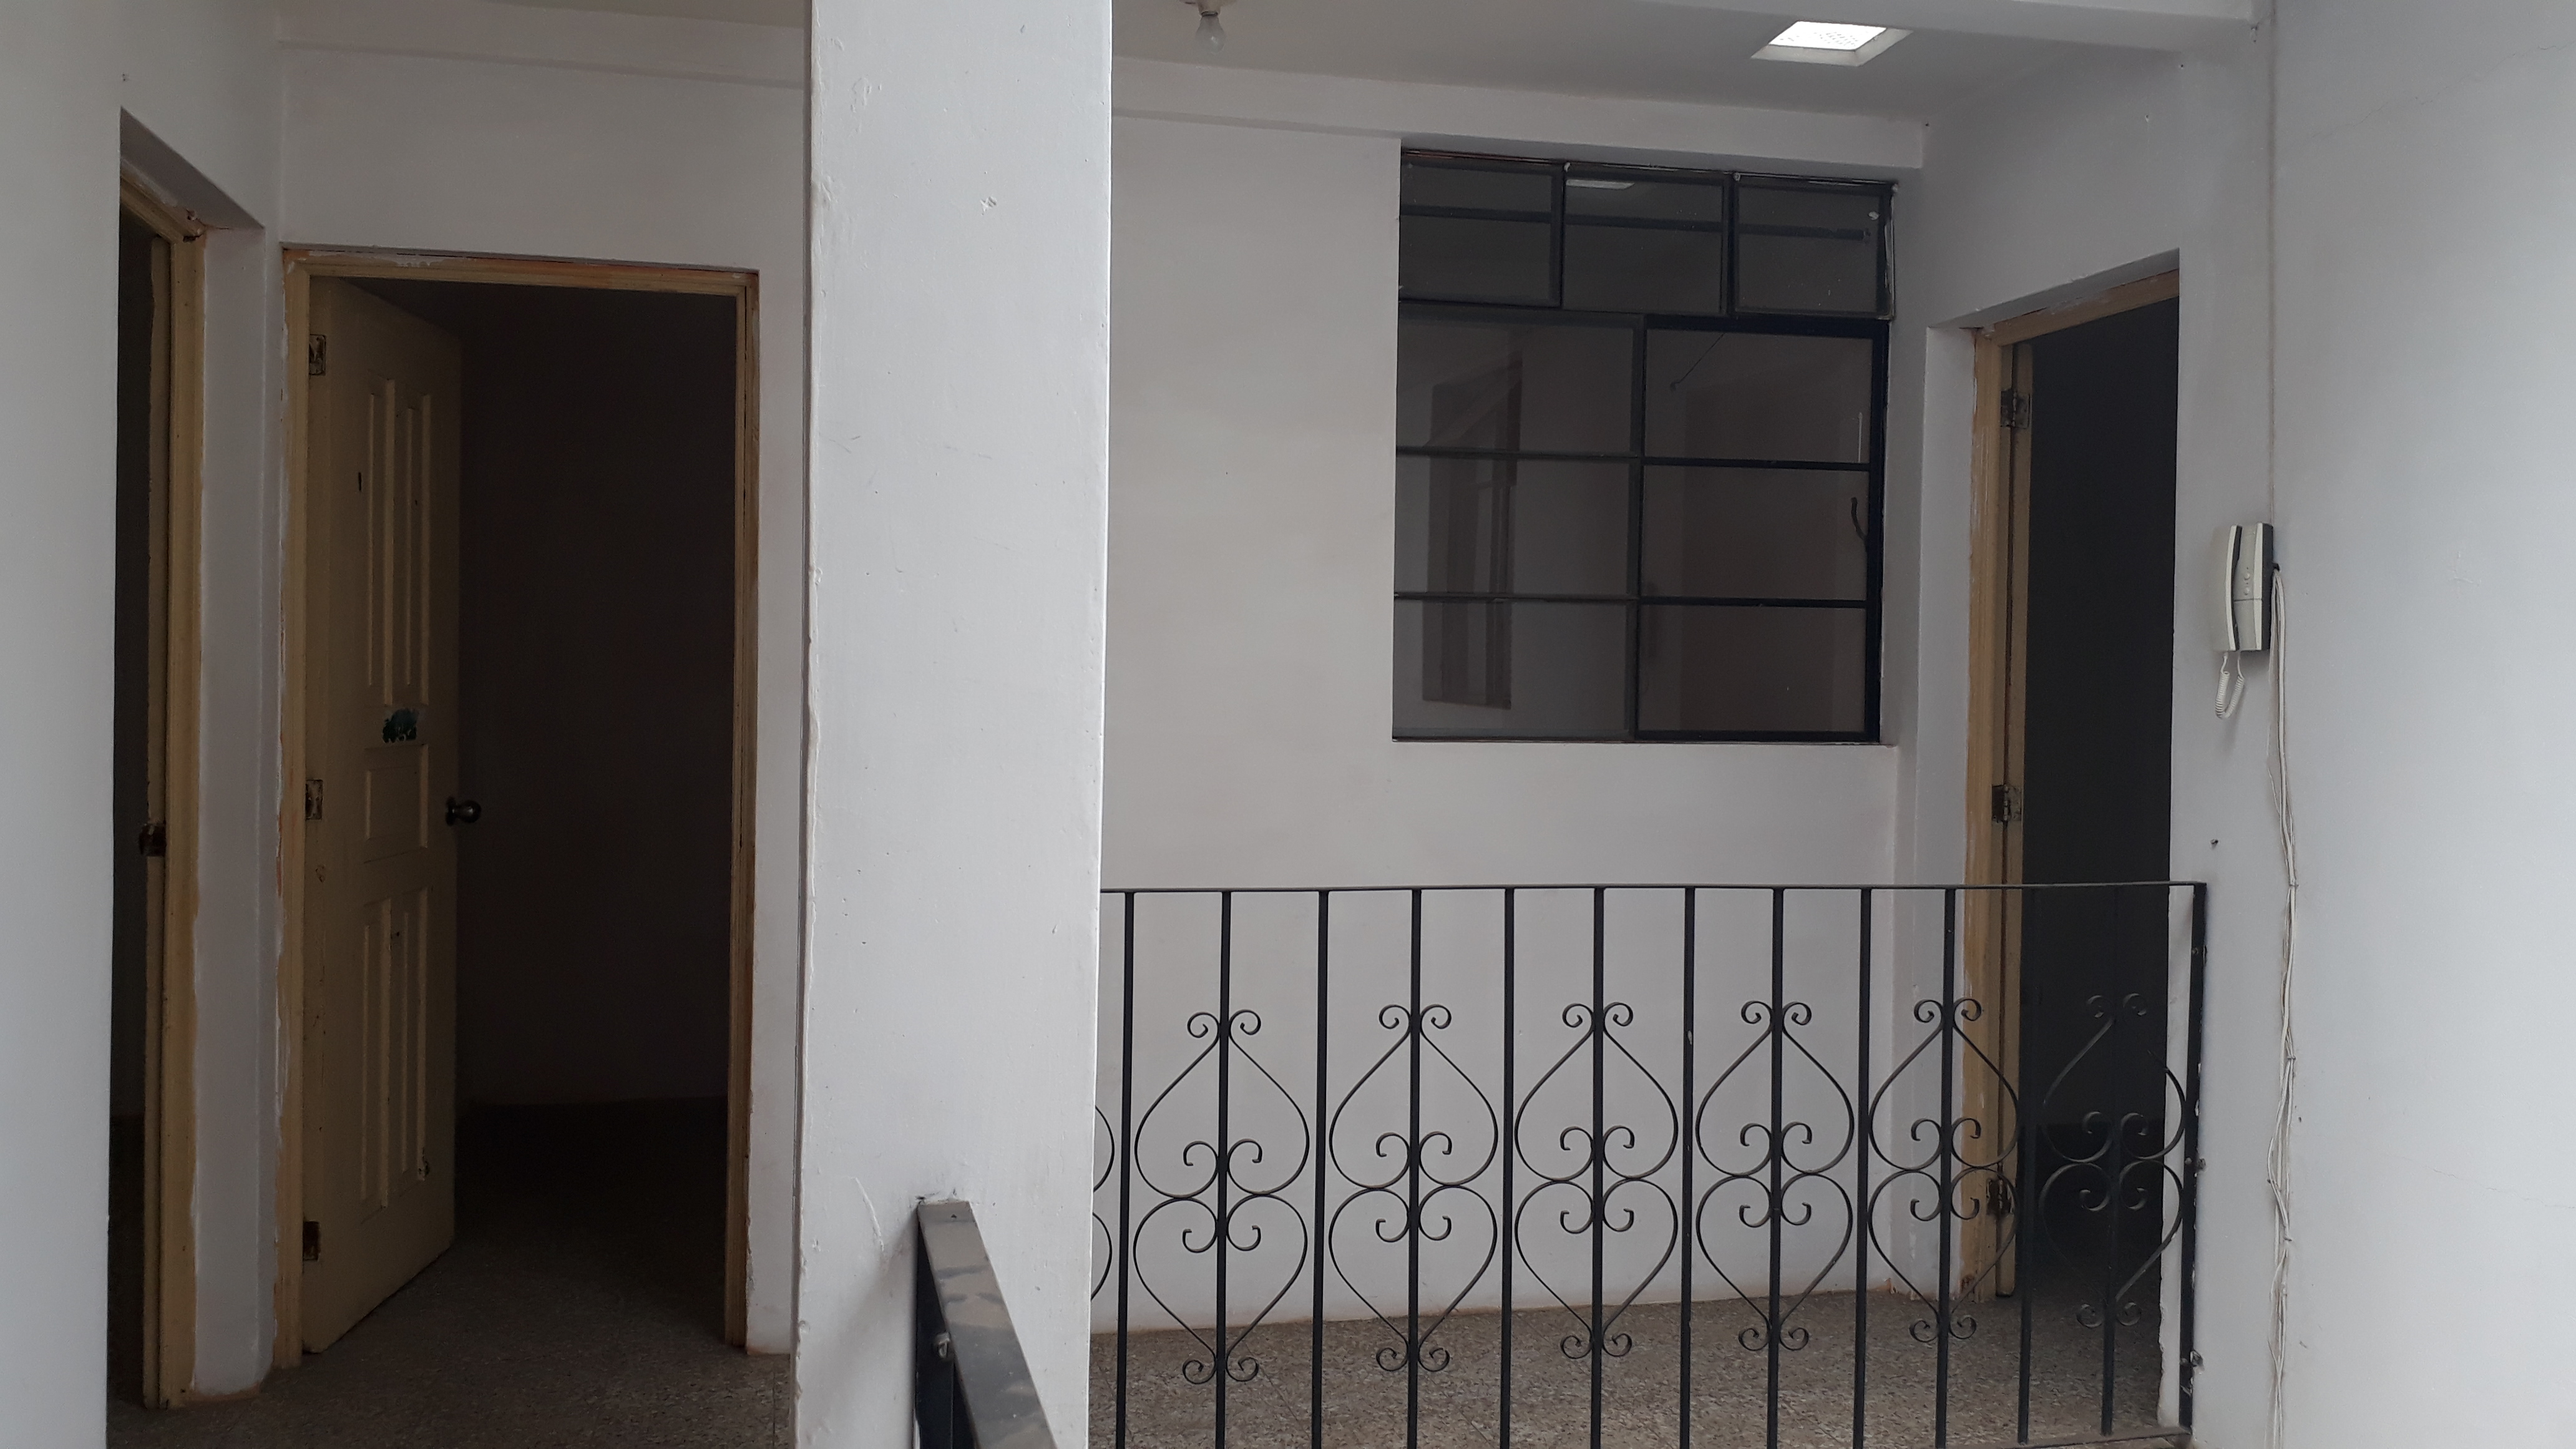 4897 SMALL APARTMENT FOR RENT IN SAN FELIPE AREA (Unfurnished) (Jb)